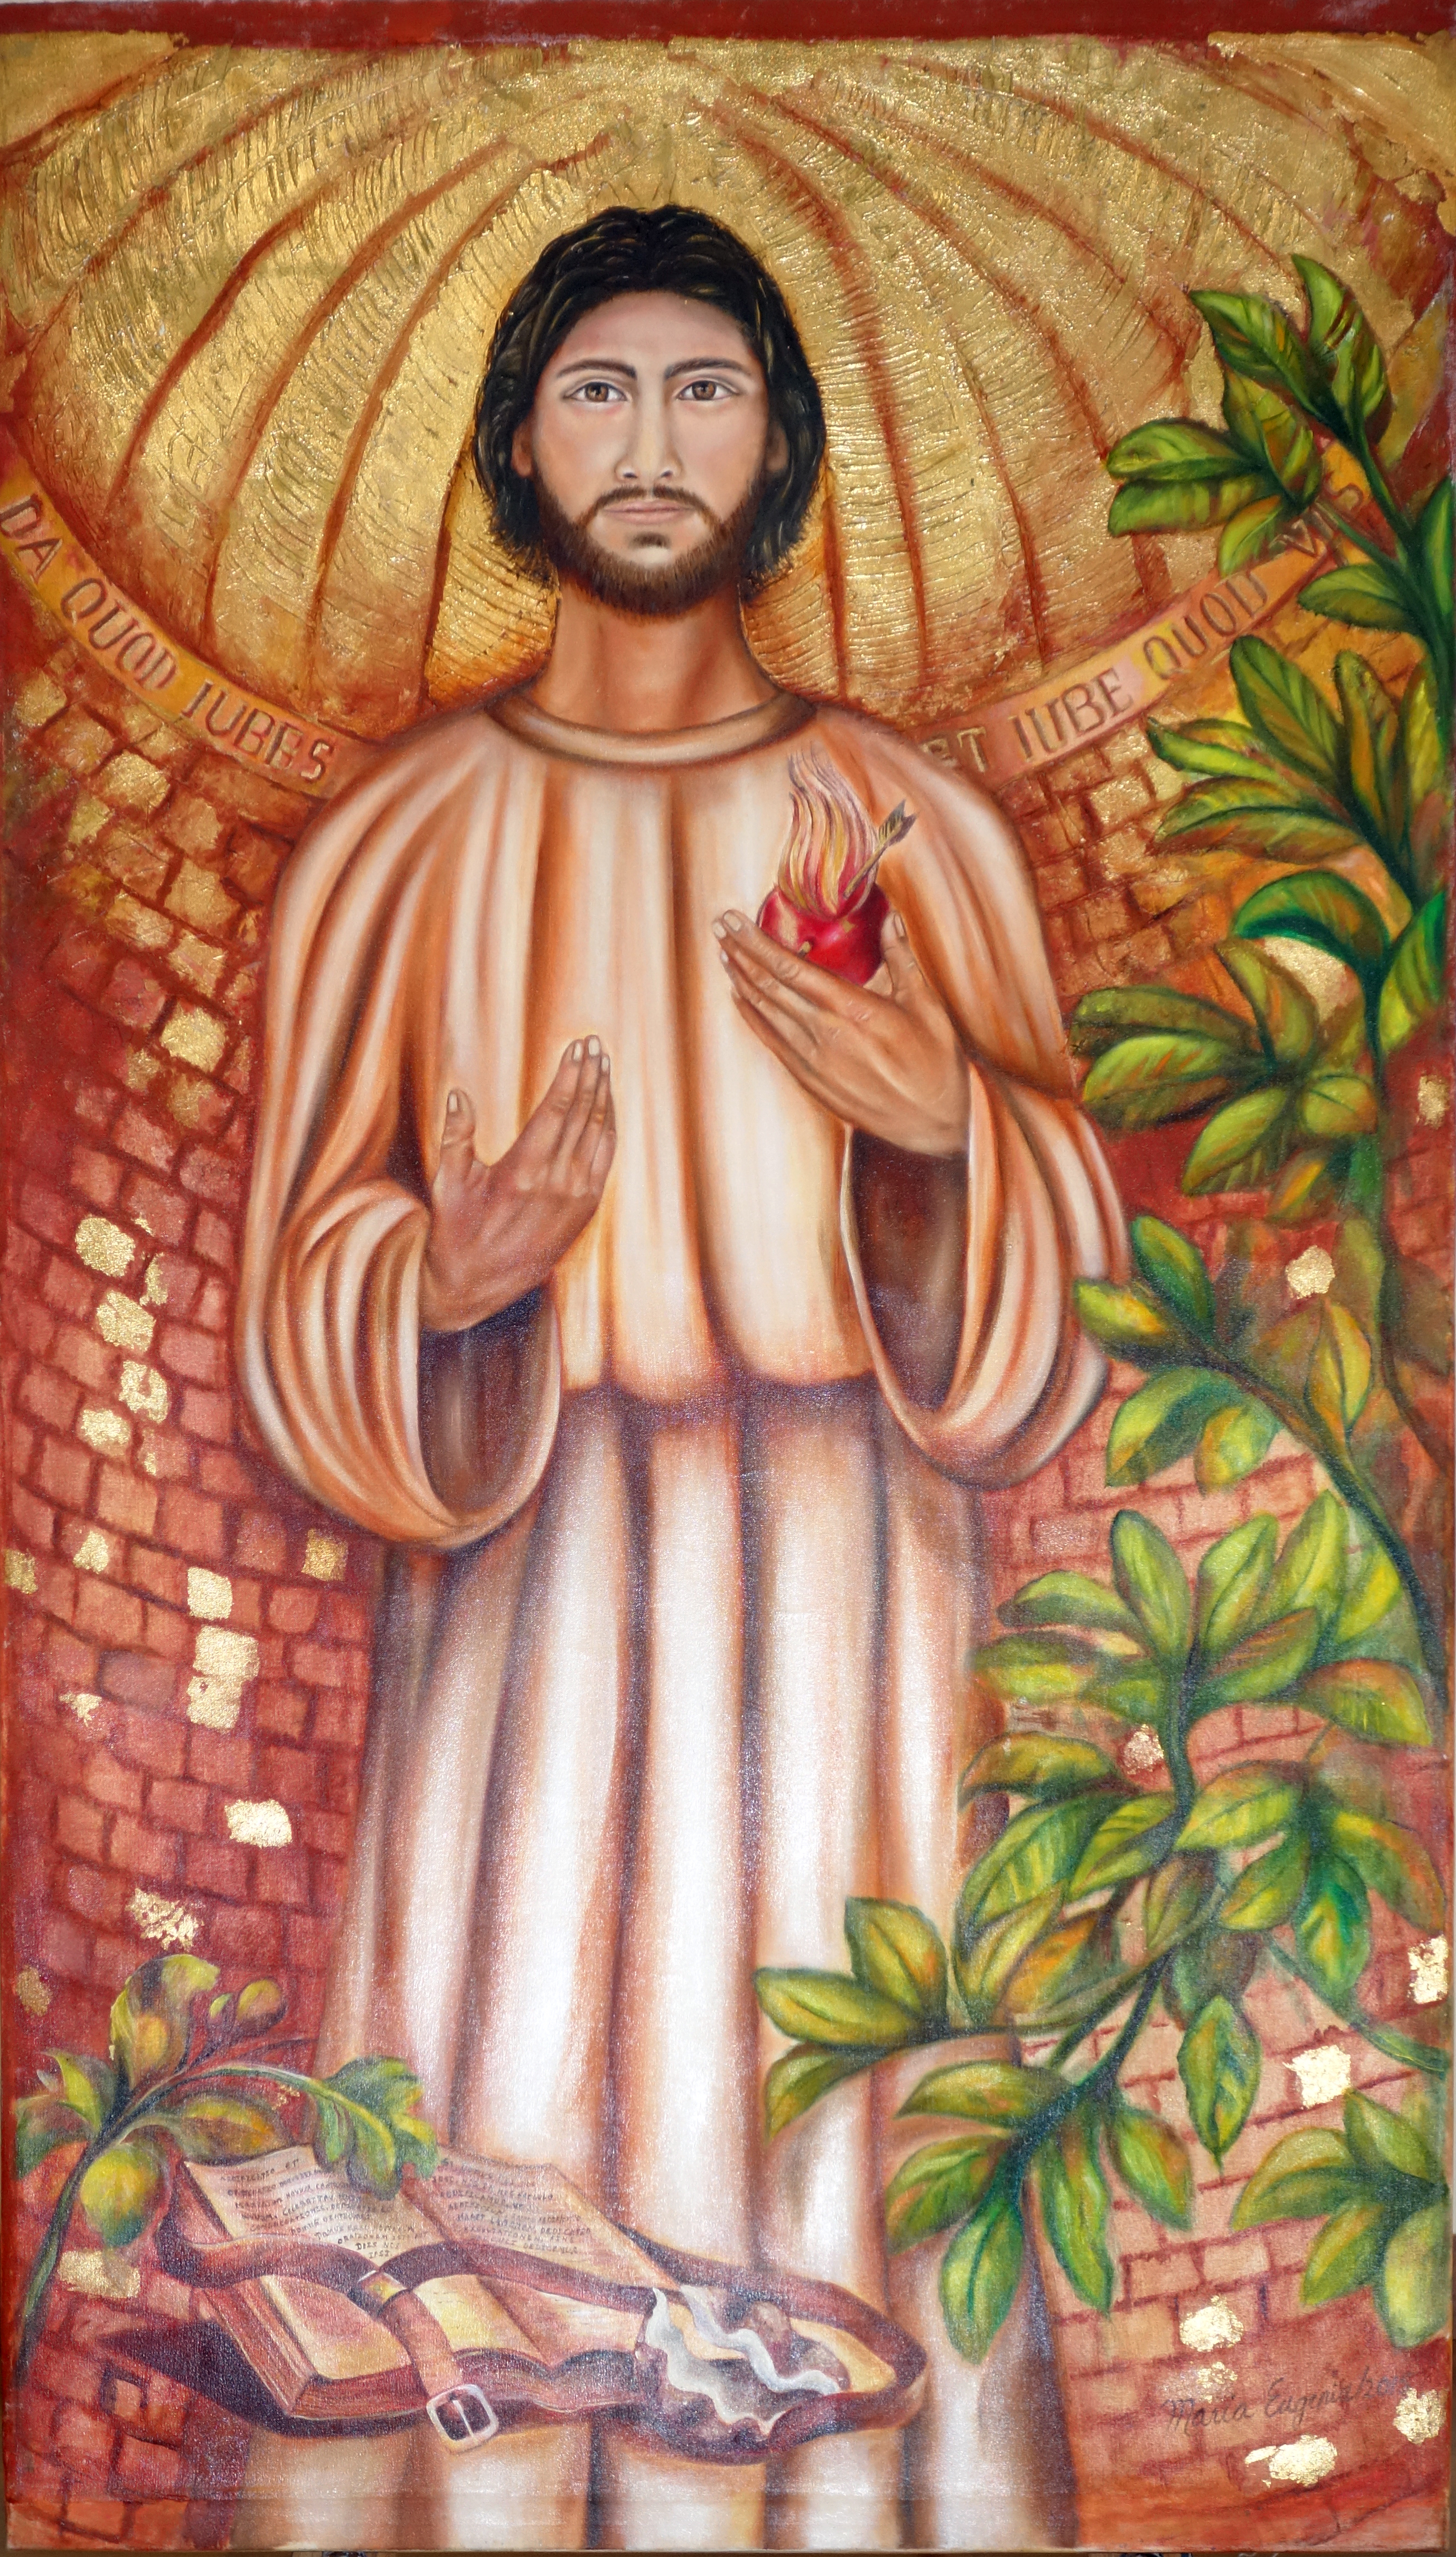 St Augustine, by María Eugenia Trujillo, in the office of the Augustinian Recollect Spirituality Centre         in Pozos de Santa Ana, San Jose, Costa Rica. 2015.